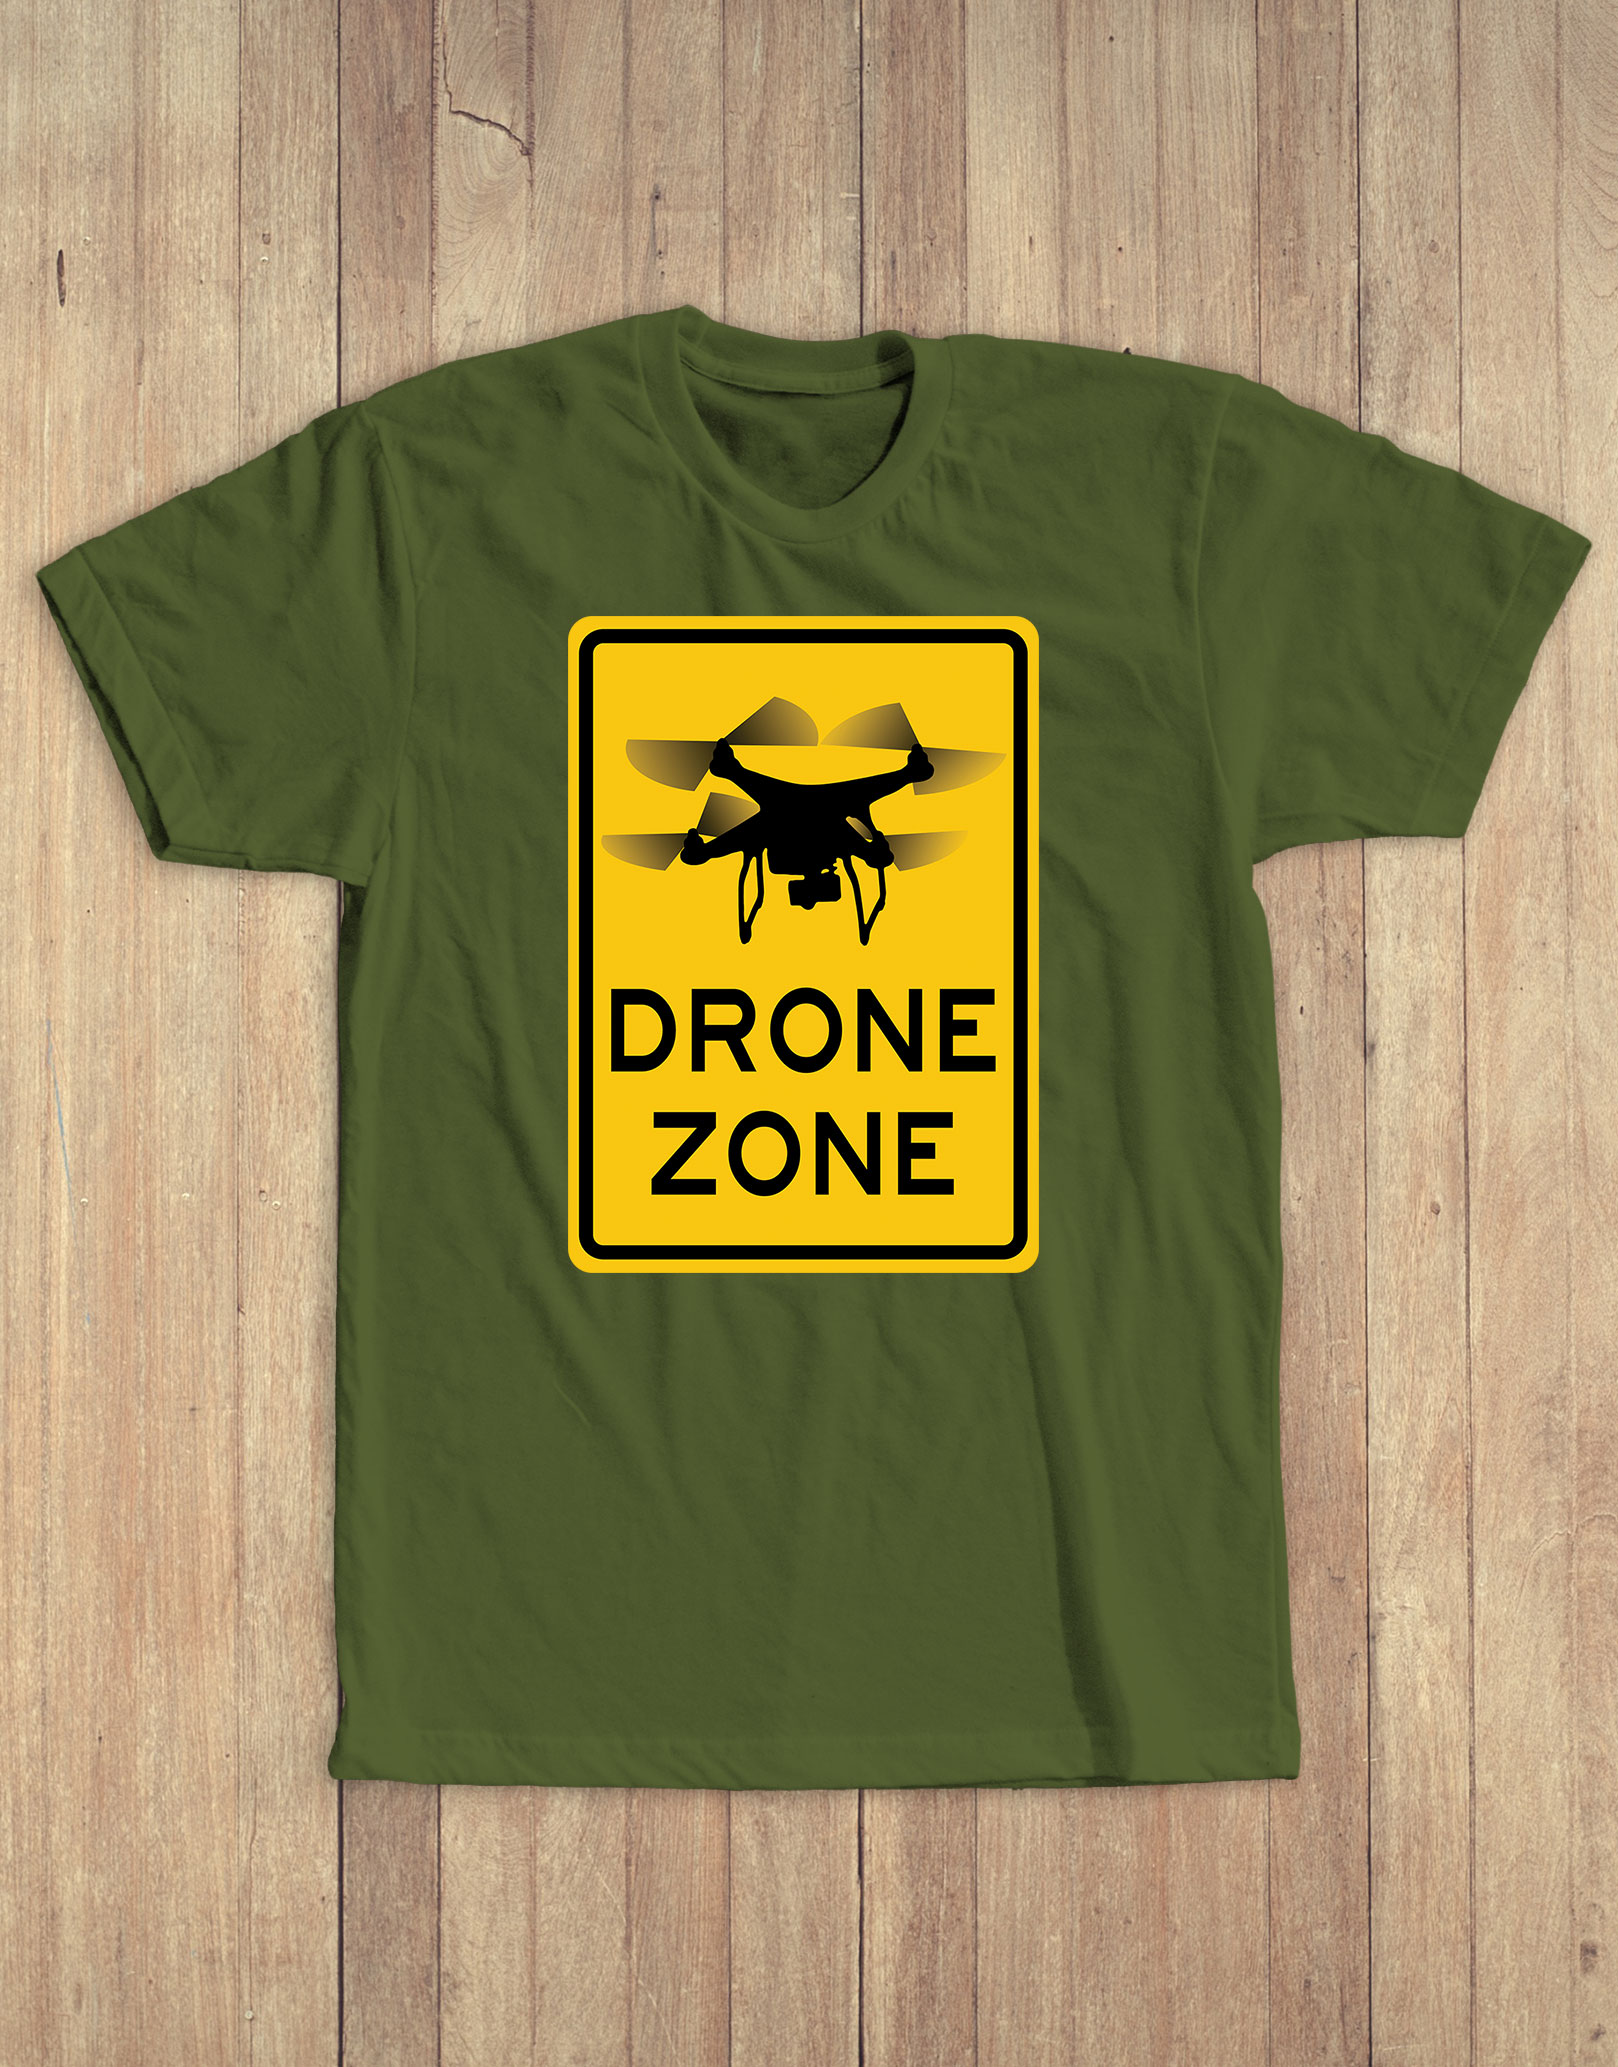 Drone zone tee olive